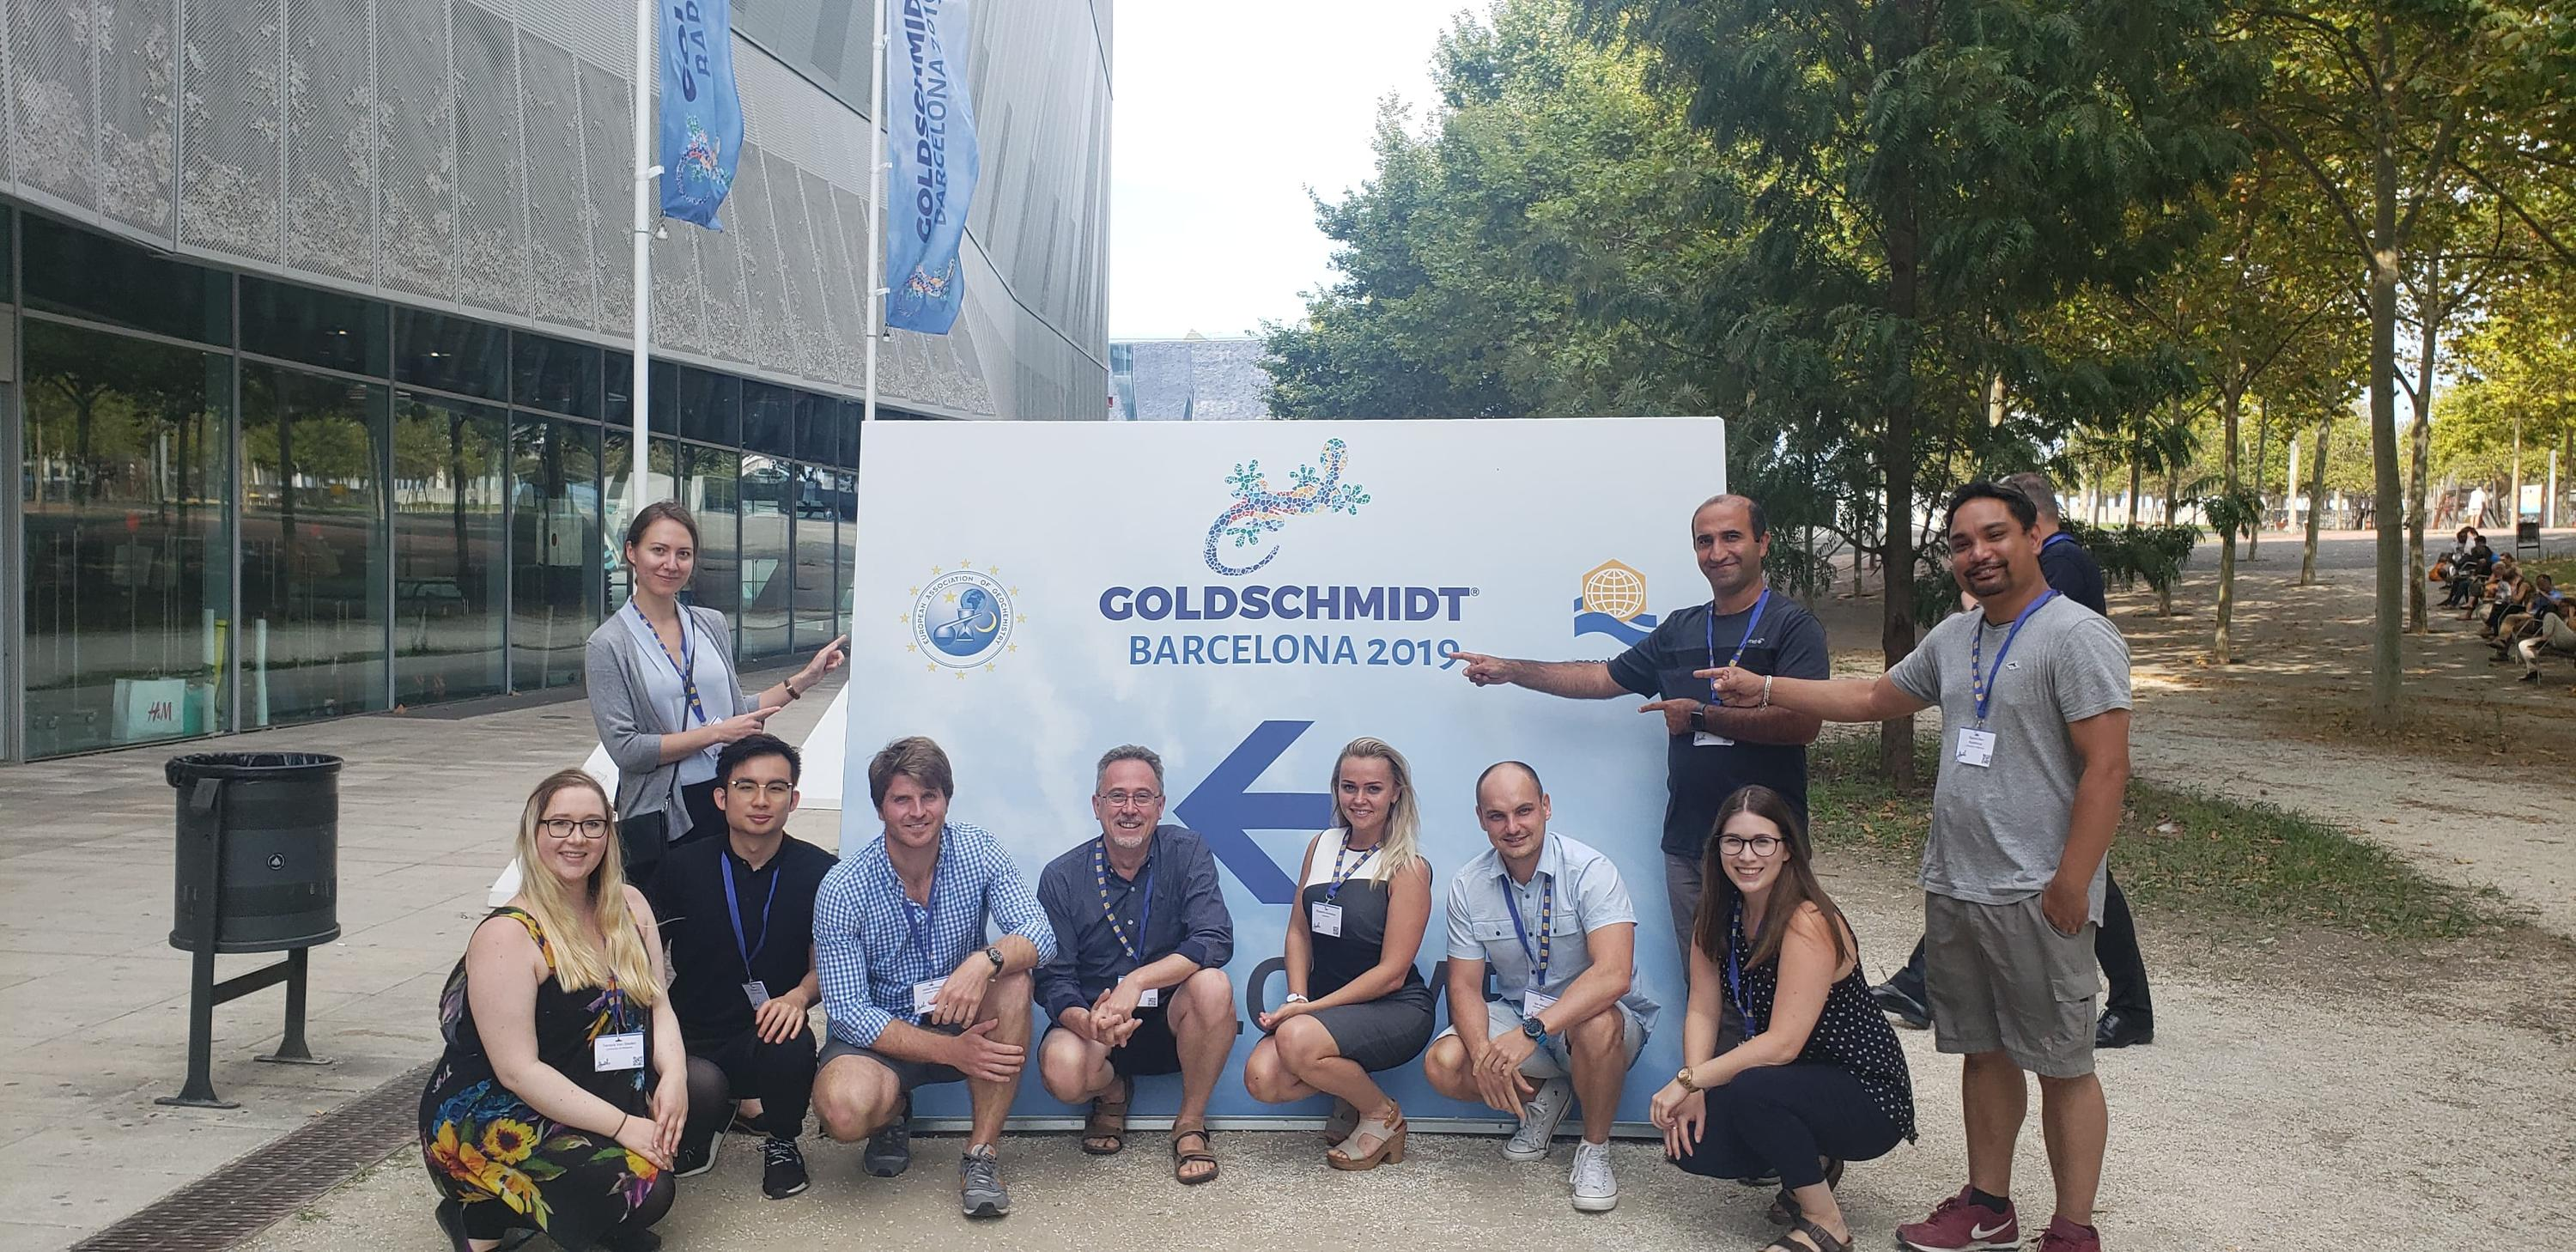 Ecohydrology group members attended Goldschmidt 2019 in Barcelona, Spain.